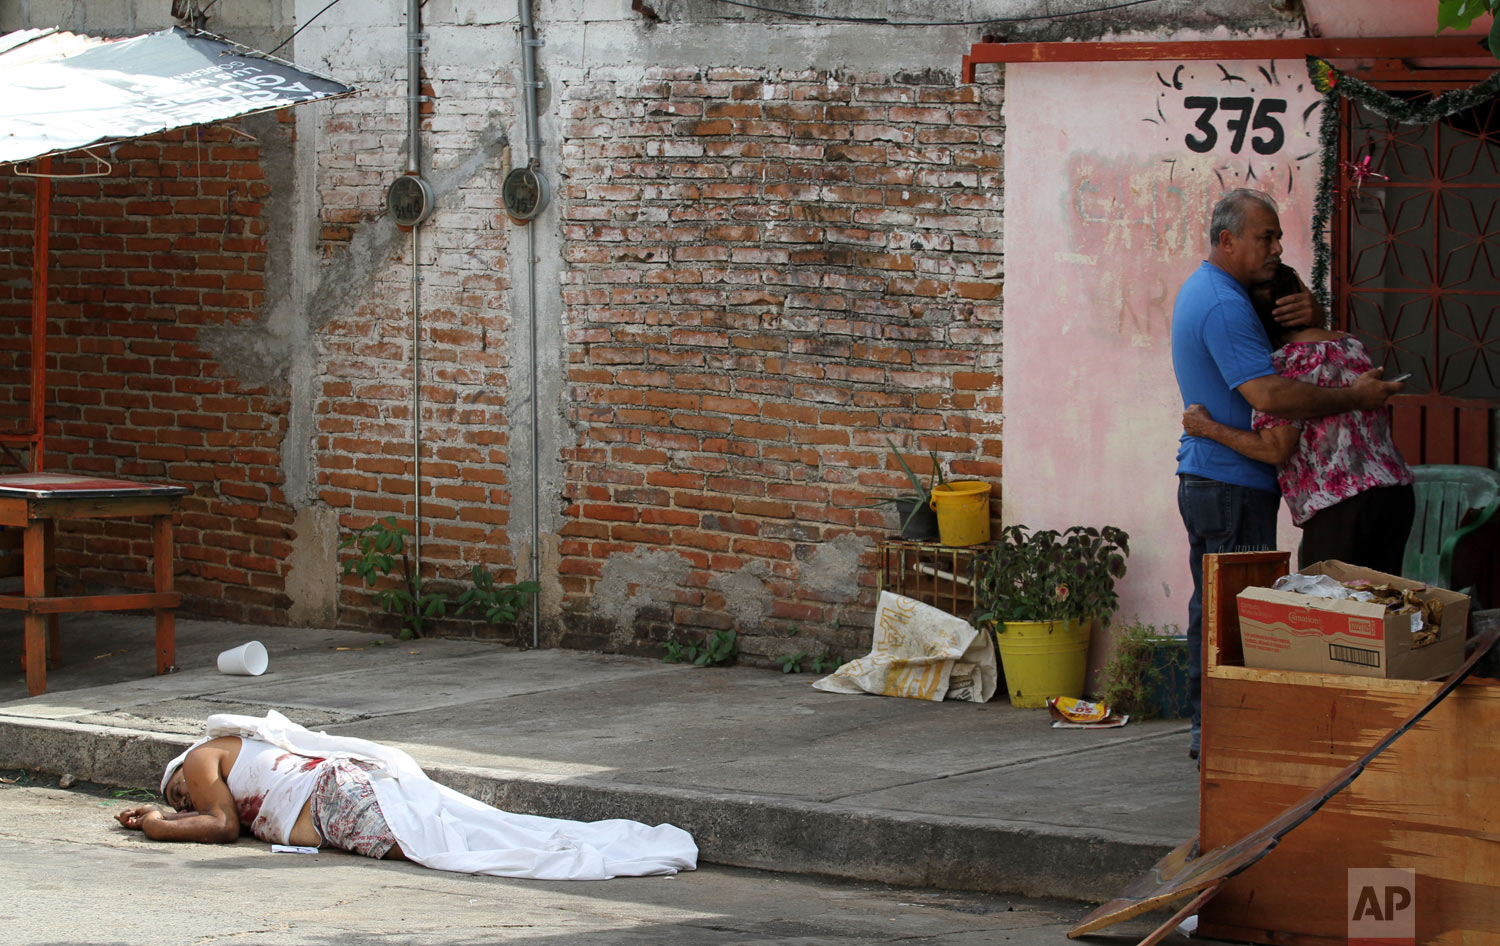 A man's body lies on the pavement after he was shot to death, as his parents hug nearby in Acapulco, Mexico, Jan. 2, 2019. (AP Photo/Bernardindo Hernandez)